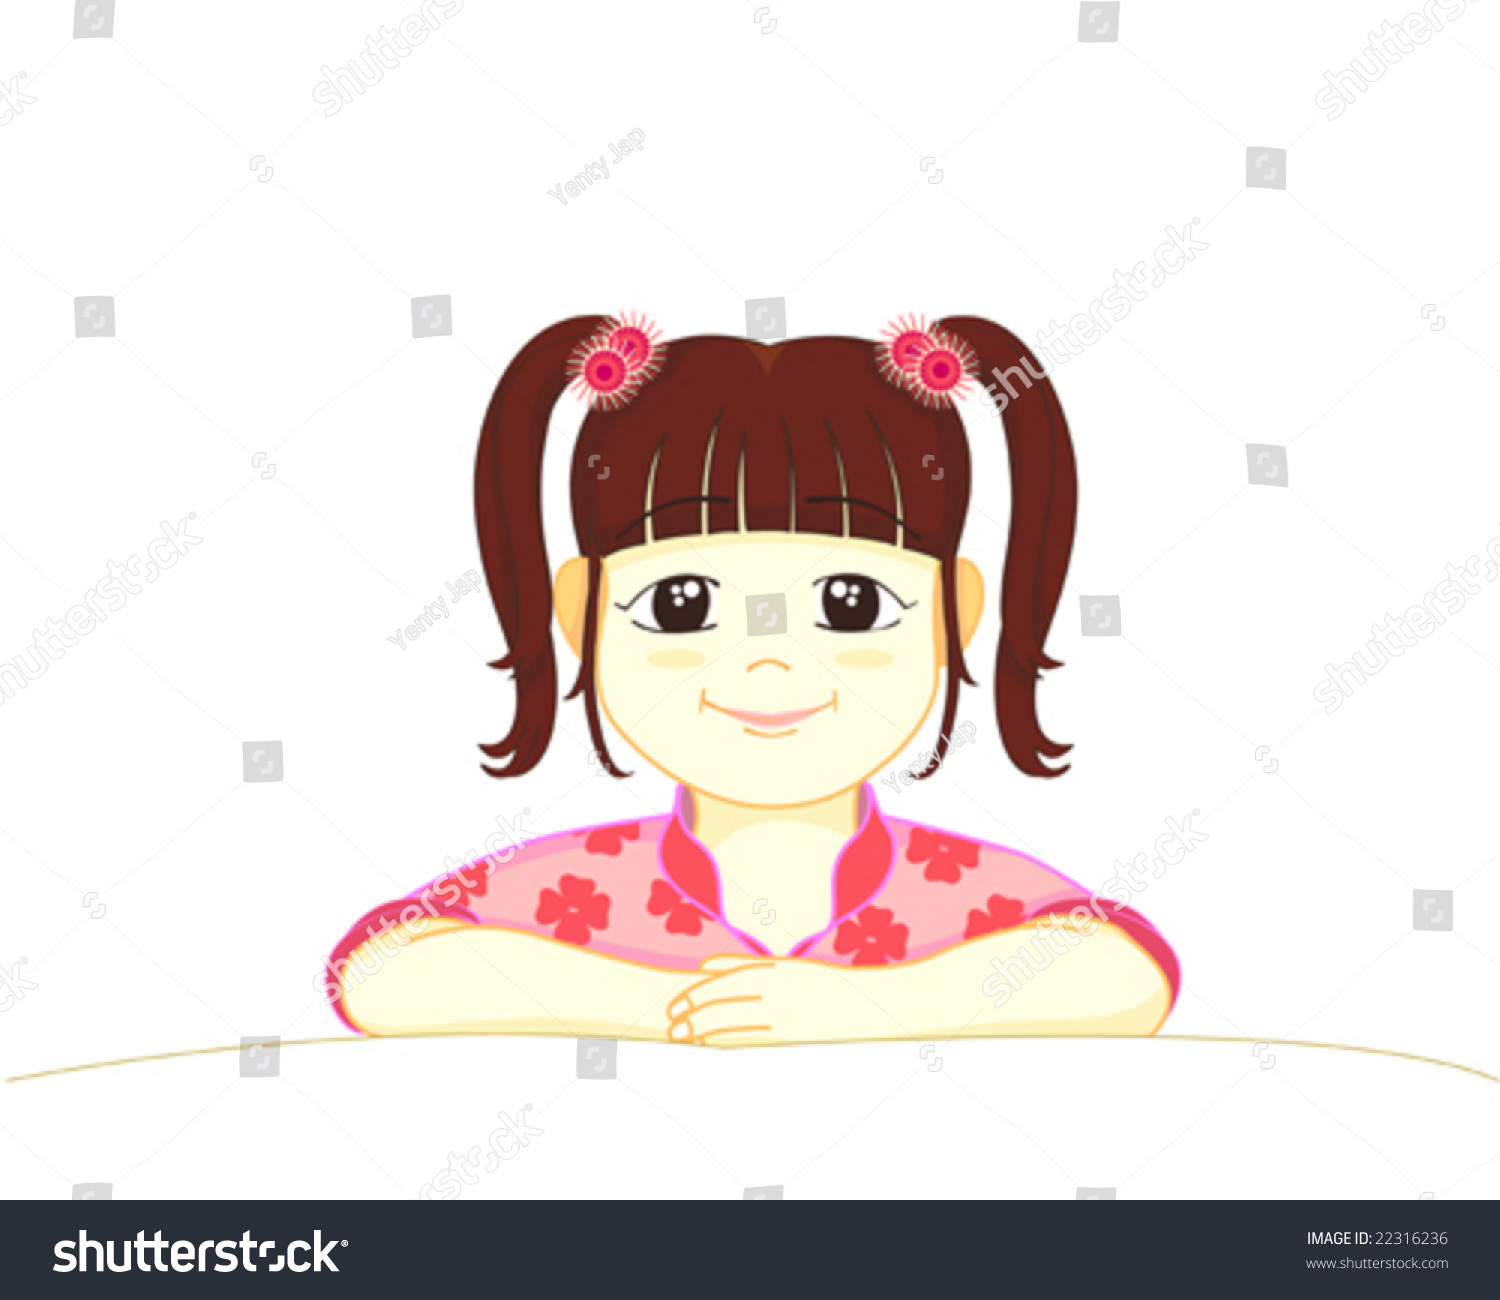 littlegirl tied up A Little Girl Smiling With Hair Tie Up Two Side Stock Vector Illustration 22316236 : Shutterstock